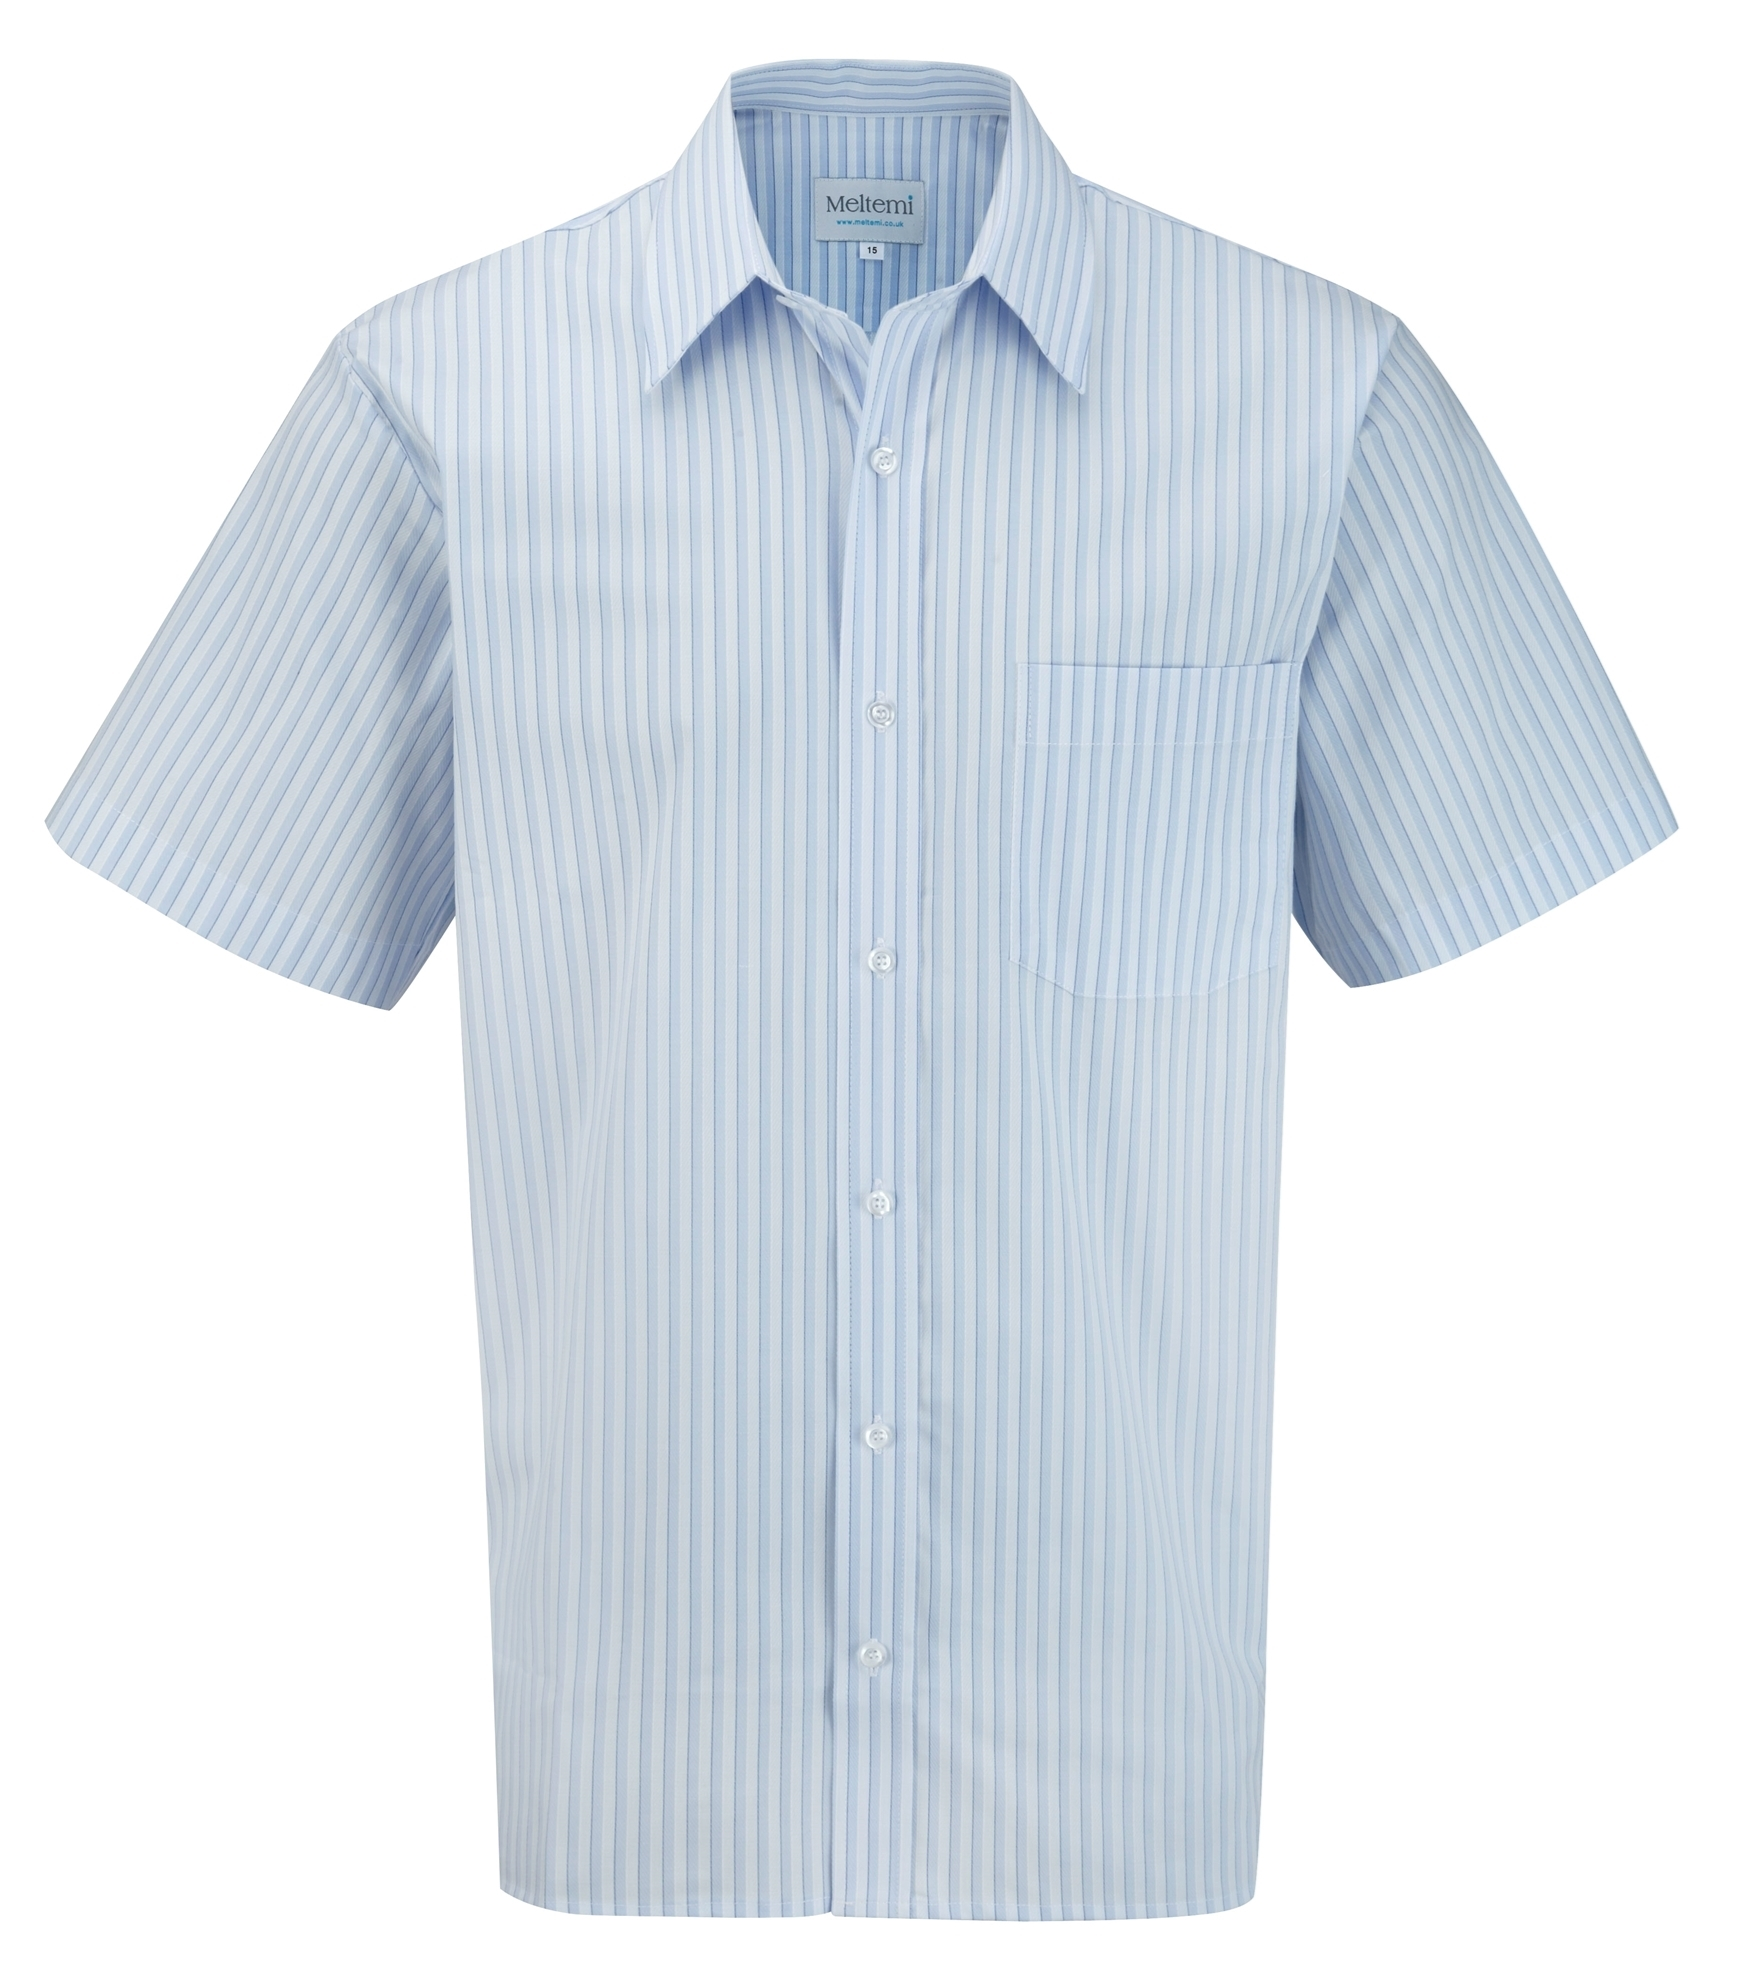 Picture of Male Short Sleeve Shirt - Blue/White Stripes